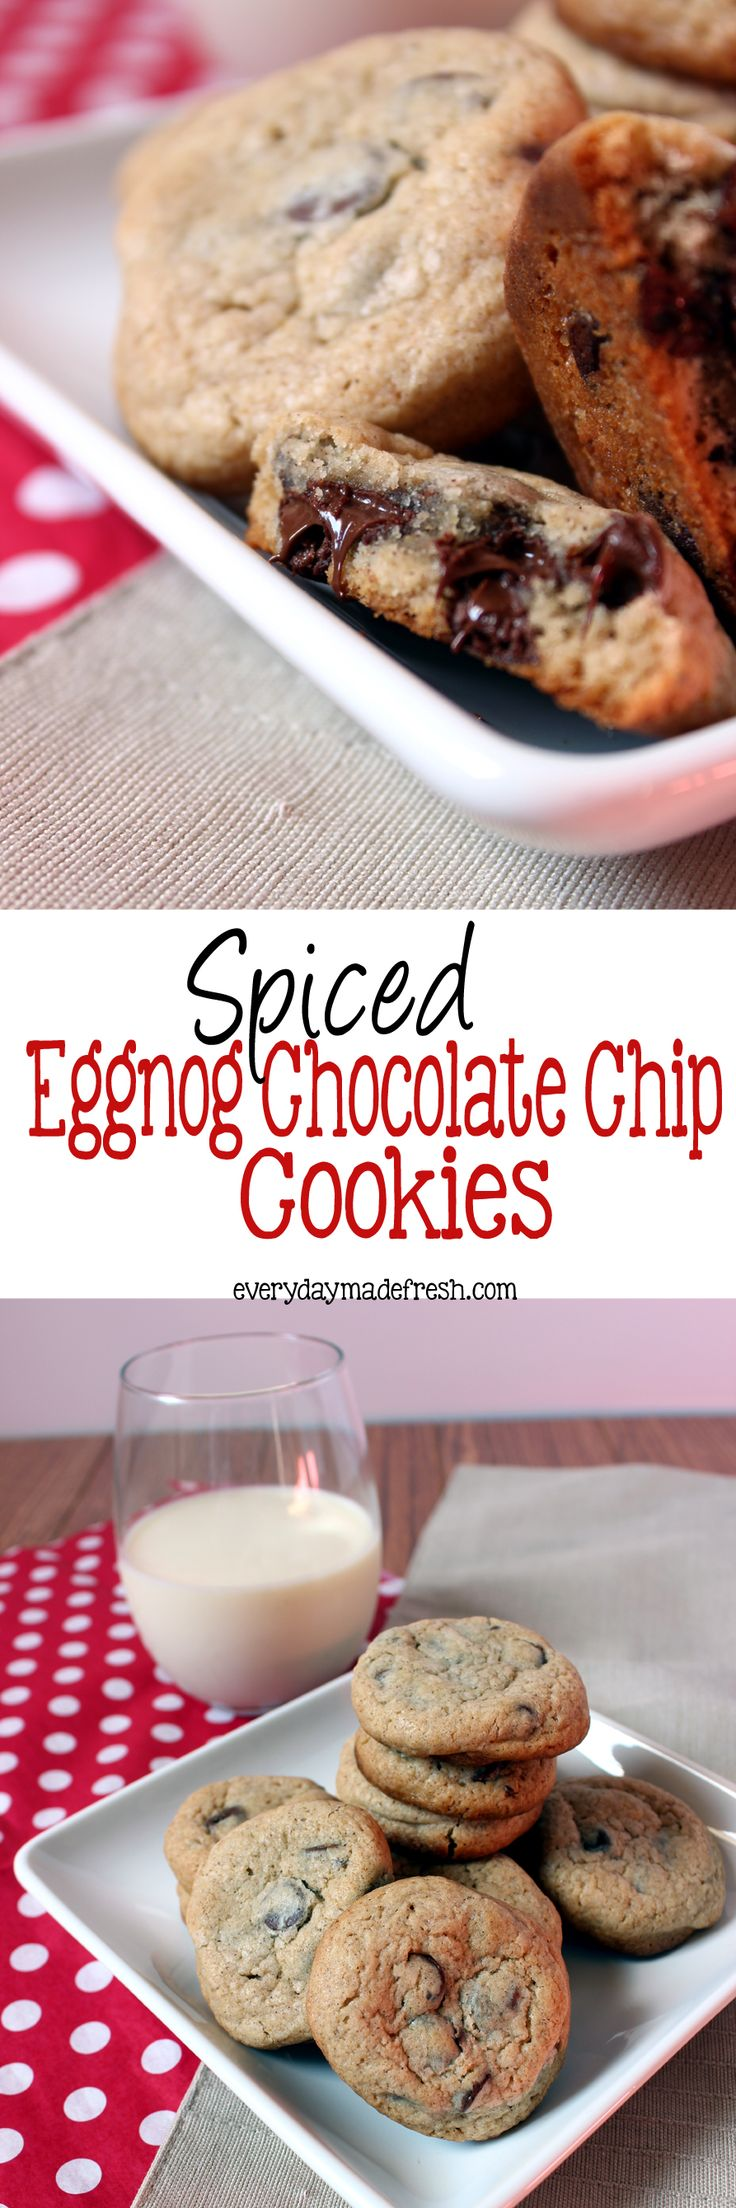 Chocolate chip cookies just got a Christmas makeover. Spiced Eggnog ...